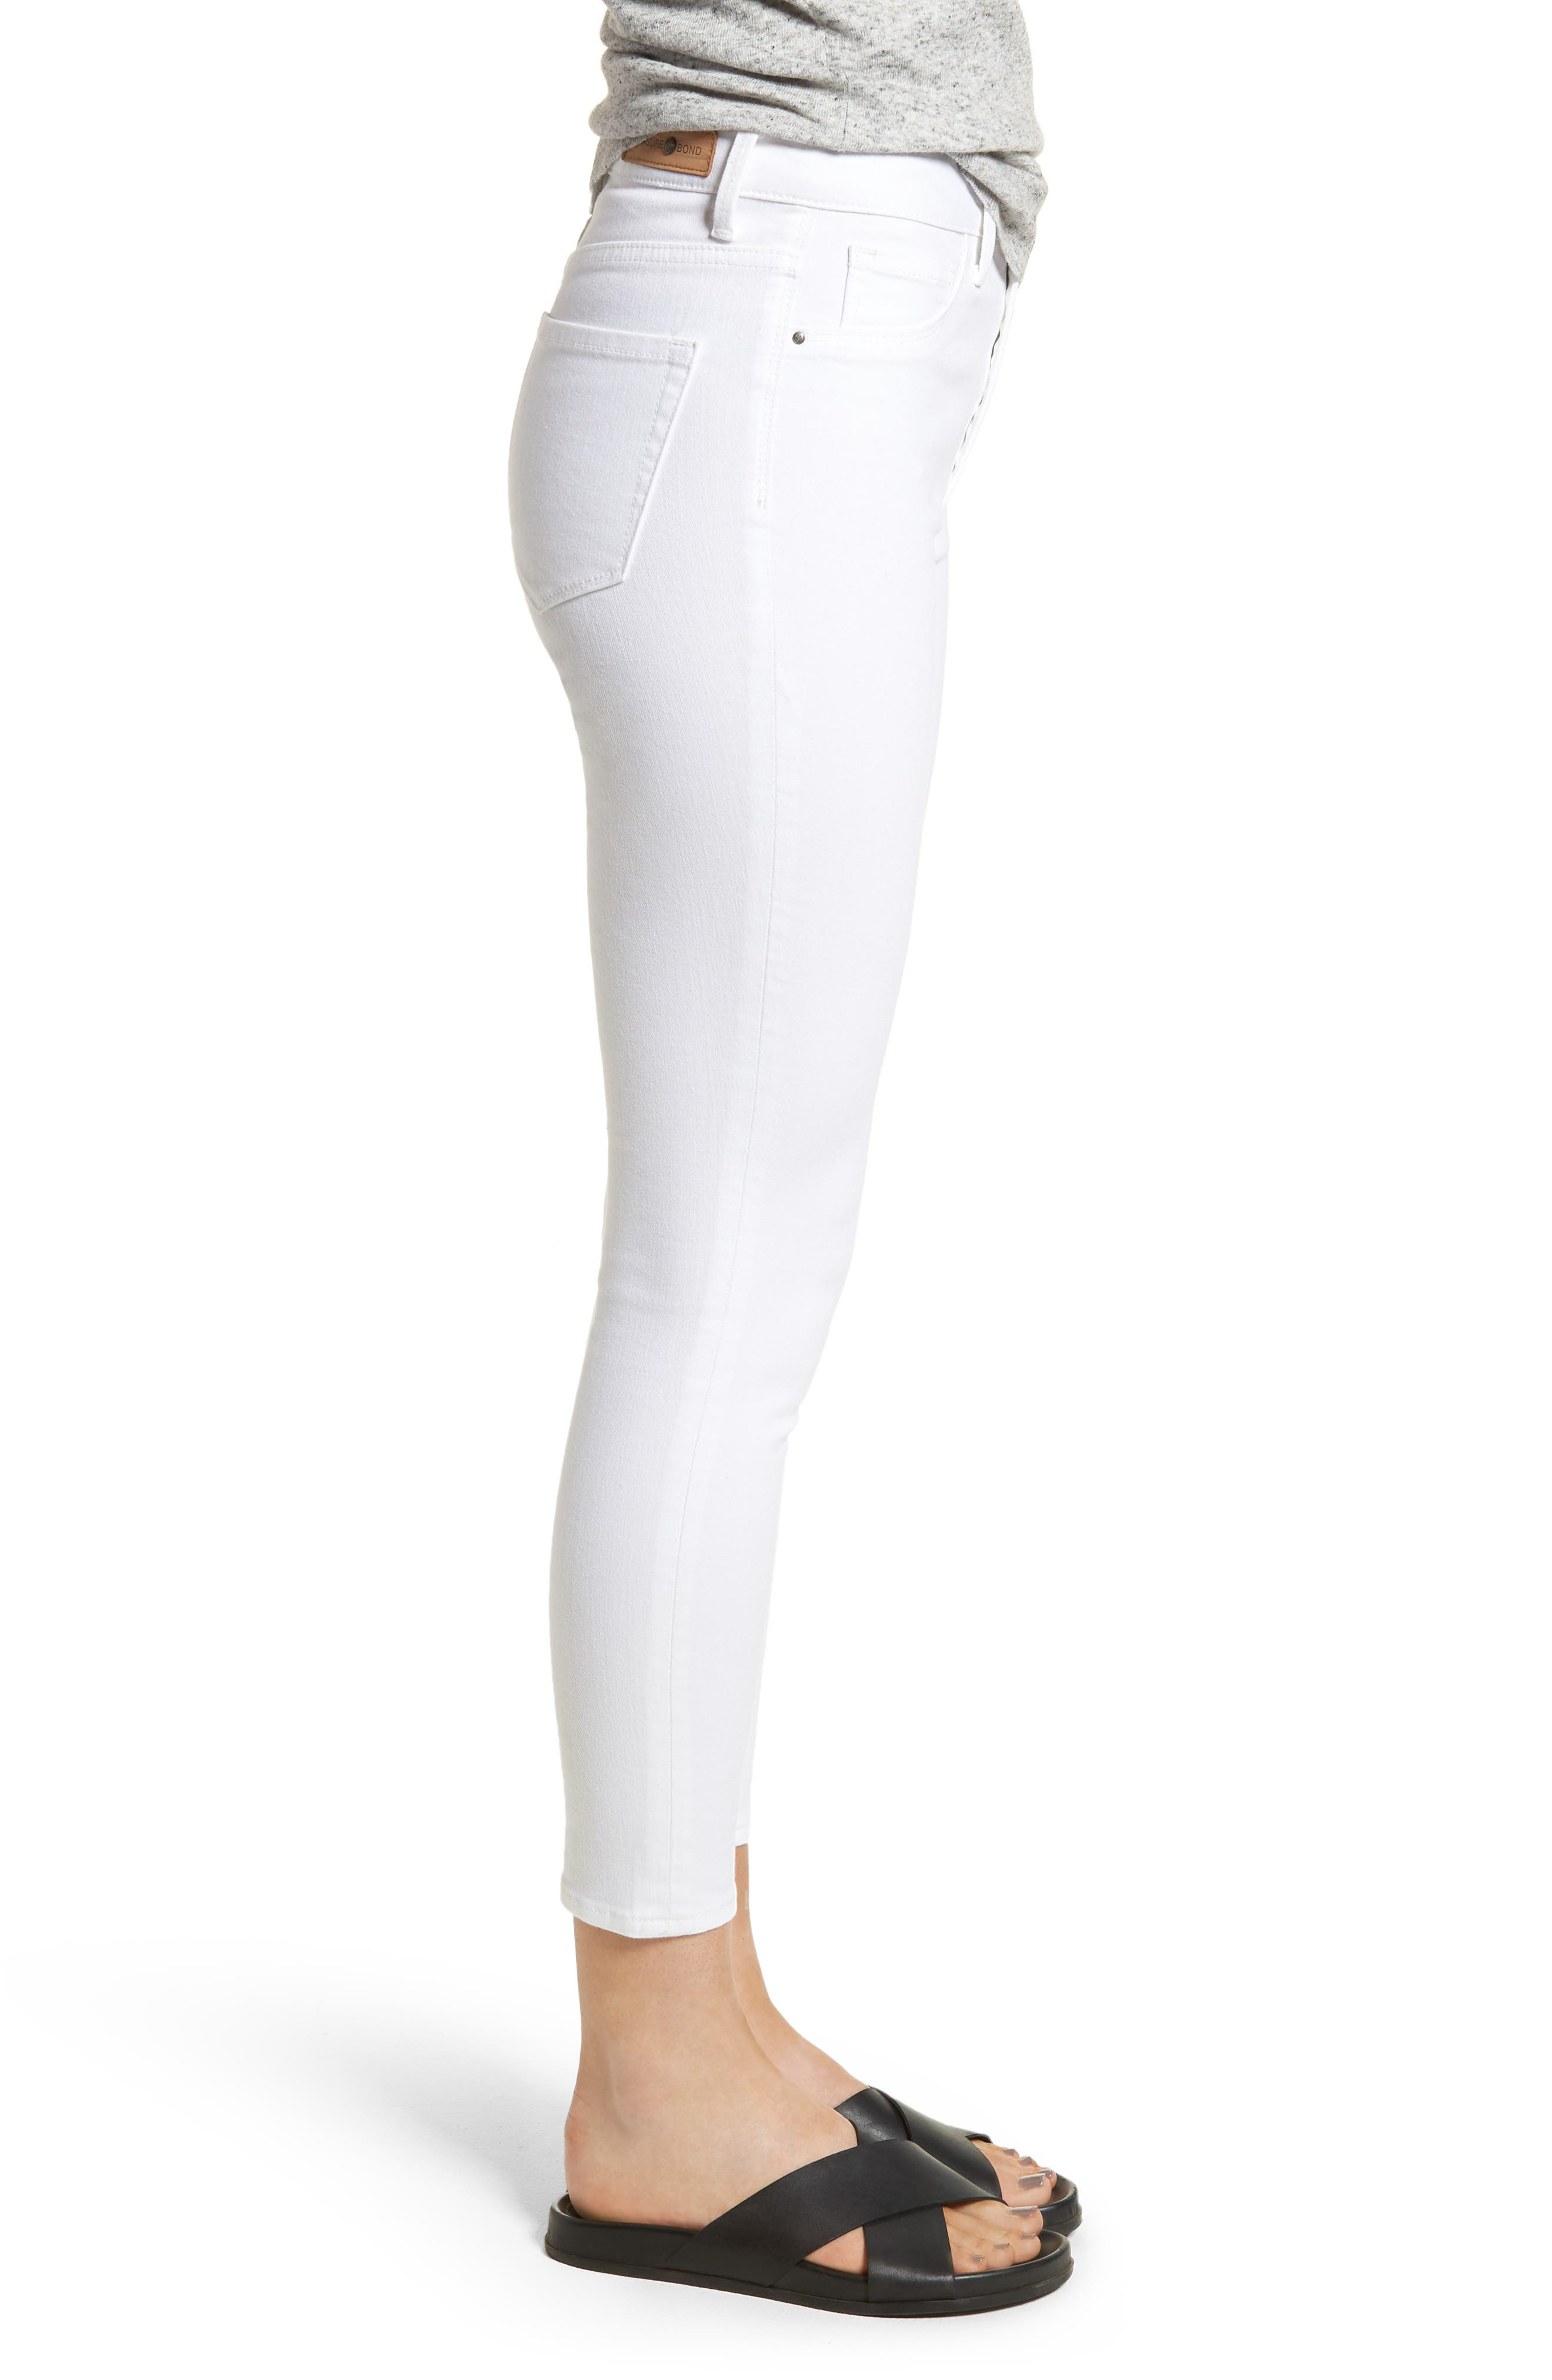 Charity High Waist Crop Skinny Jeans,                             Alternate thumbnail 3, color,                             100